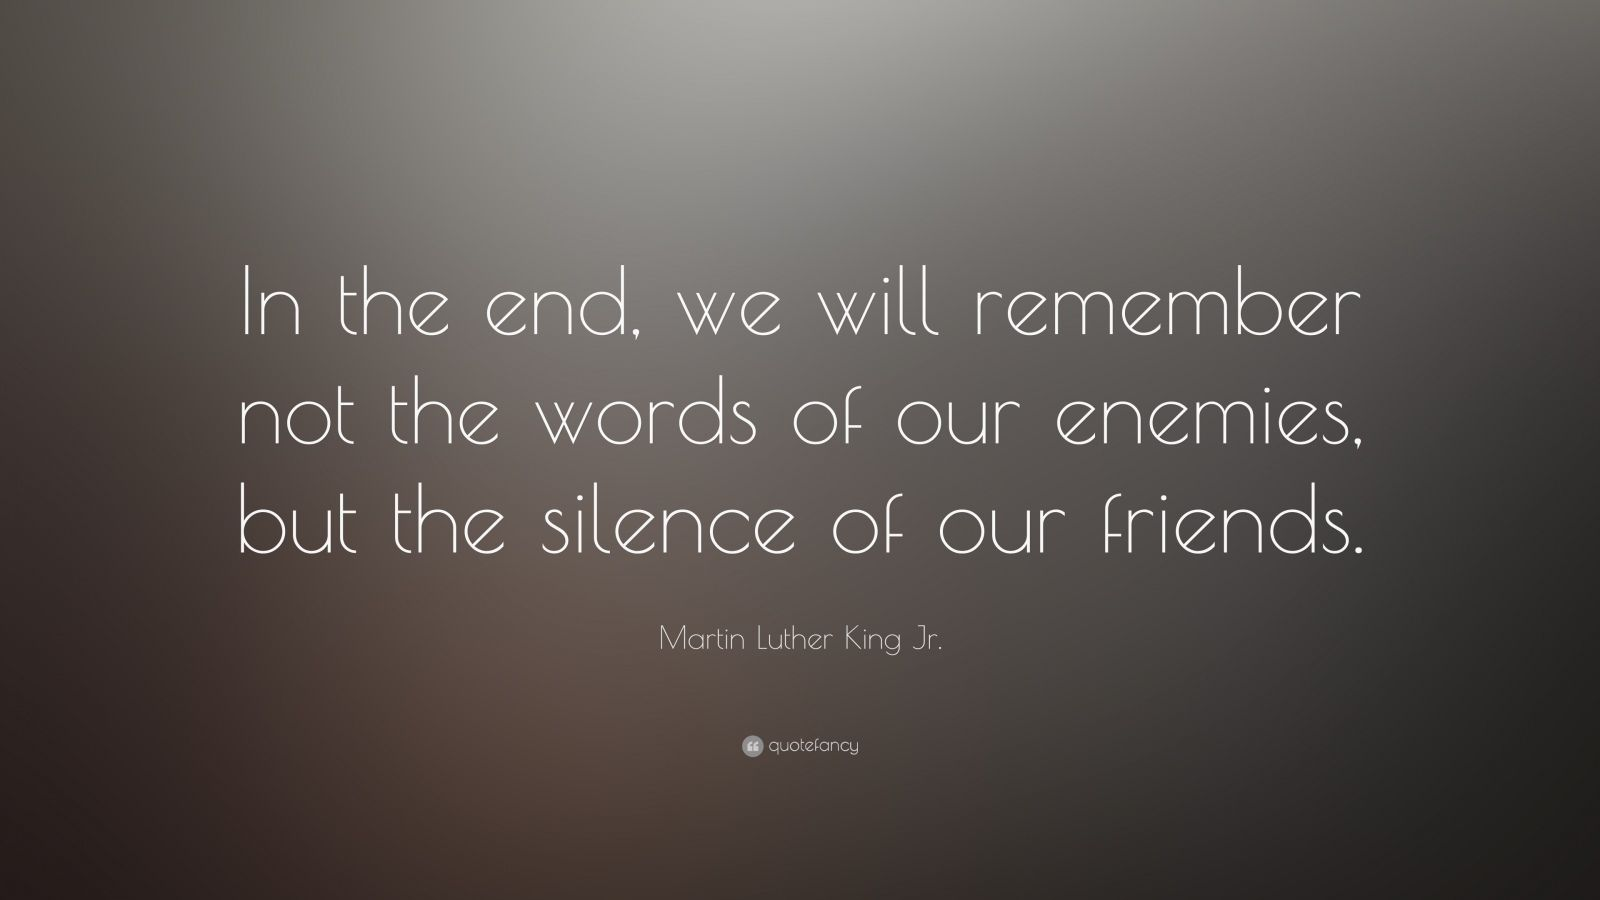 """Martin Luther King Jr. Quote: """"In the end, we will remember not the words of our enemies, but the silence of our friends."""""""